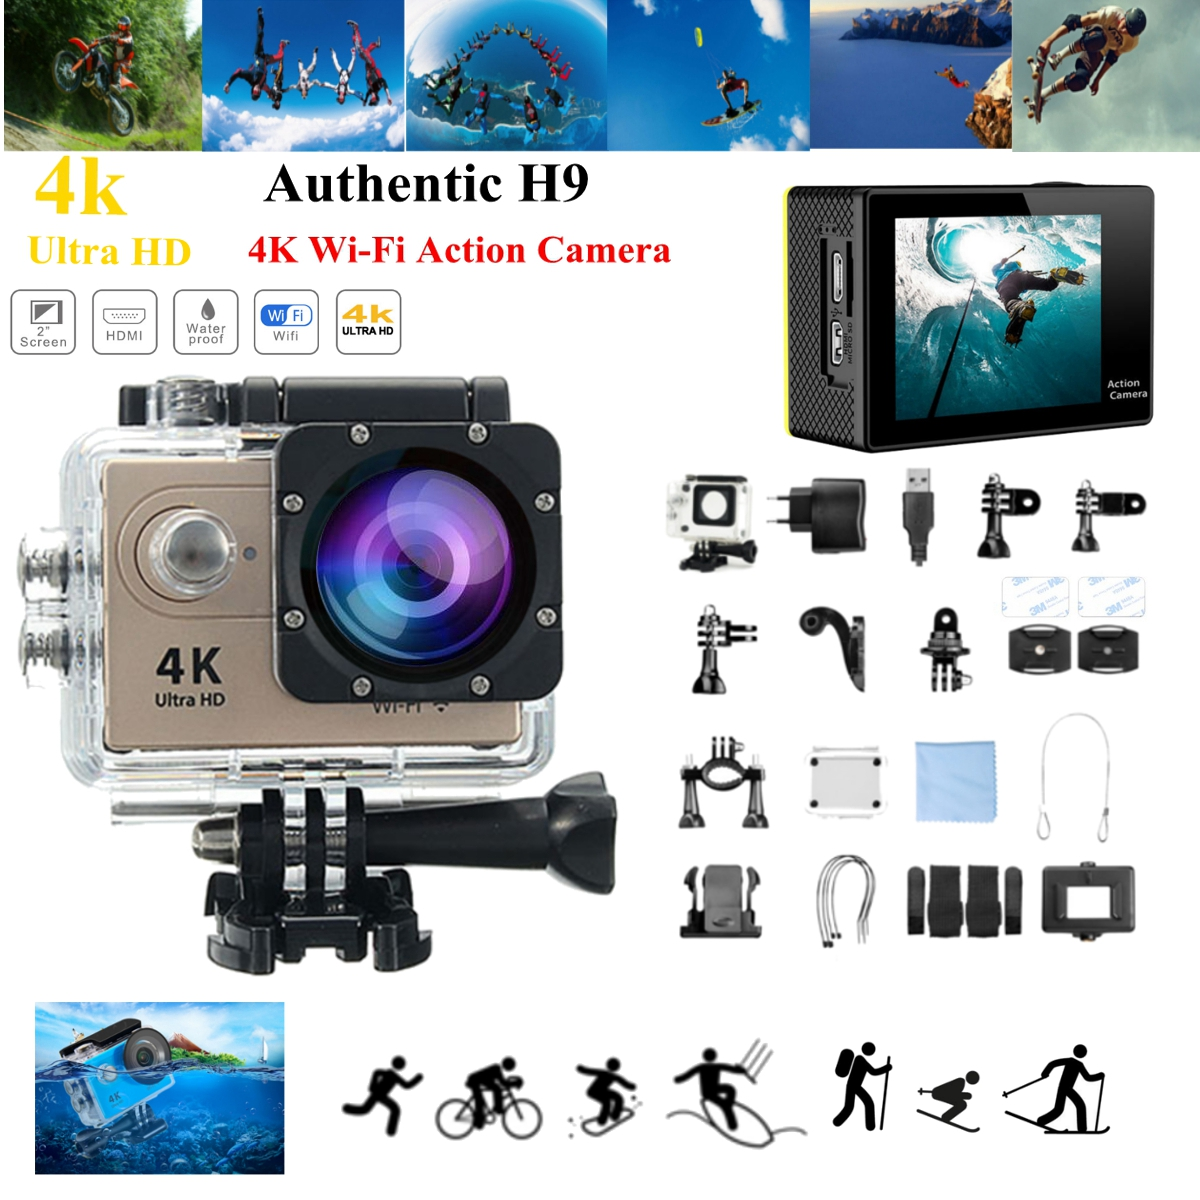 H9R / H9 SE Ultra 4K HD 1080P WIFI 60FPS Action Sport Camera 170 degree Wide Camcorder 2017 arrival original eken action camera h9 h9r 4k sport camera with remote hd wifi 1080p 30fps go waterproof pro actoin cam